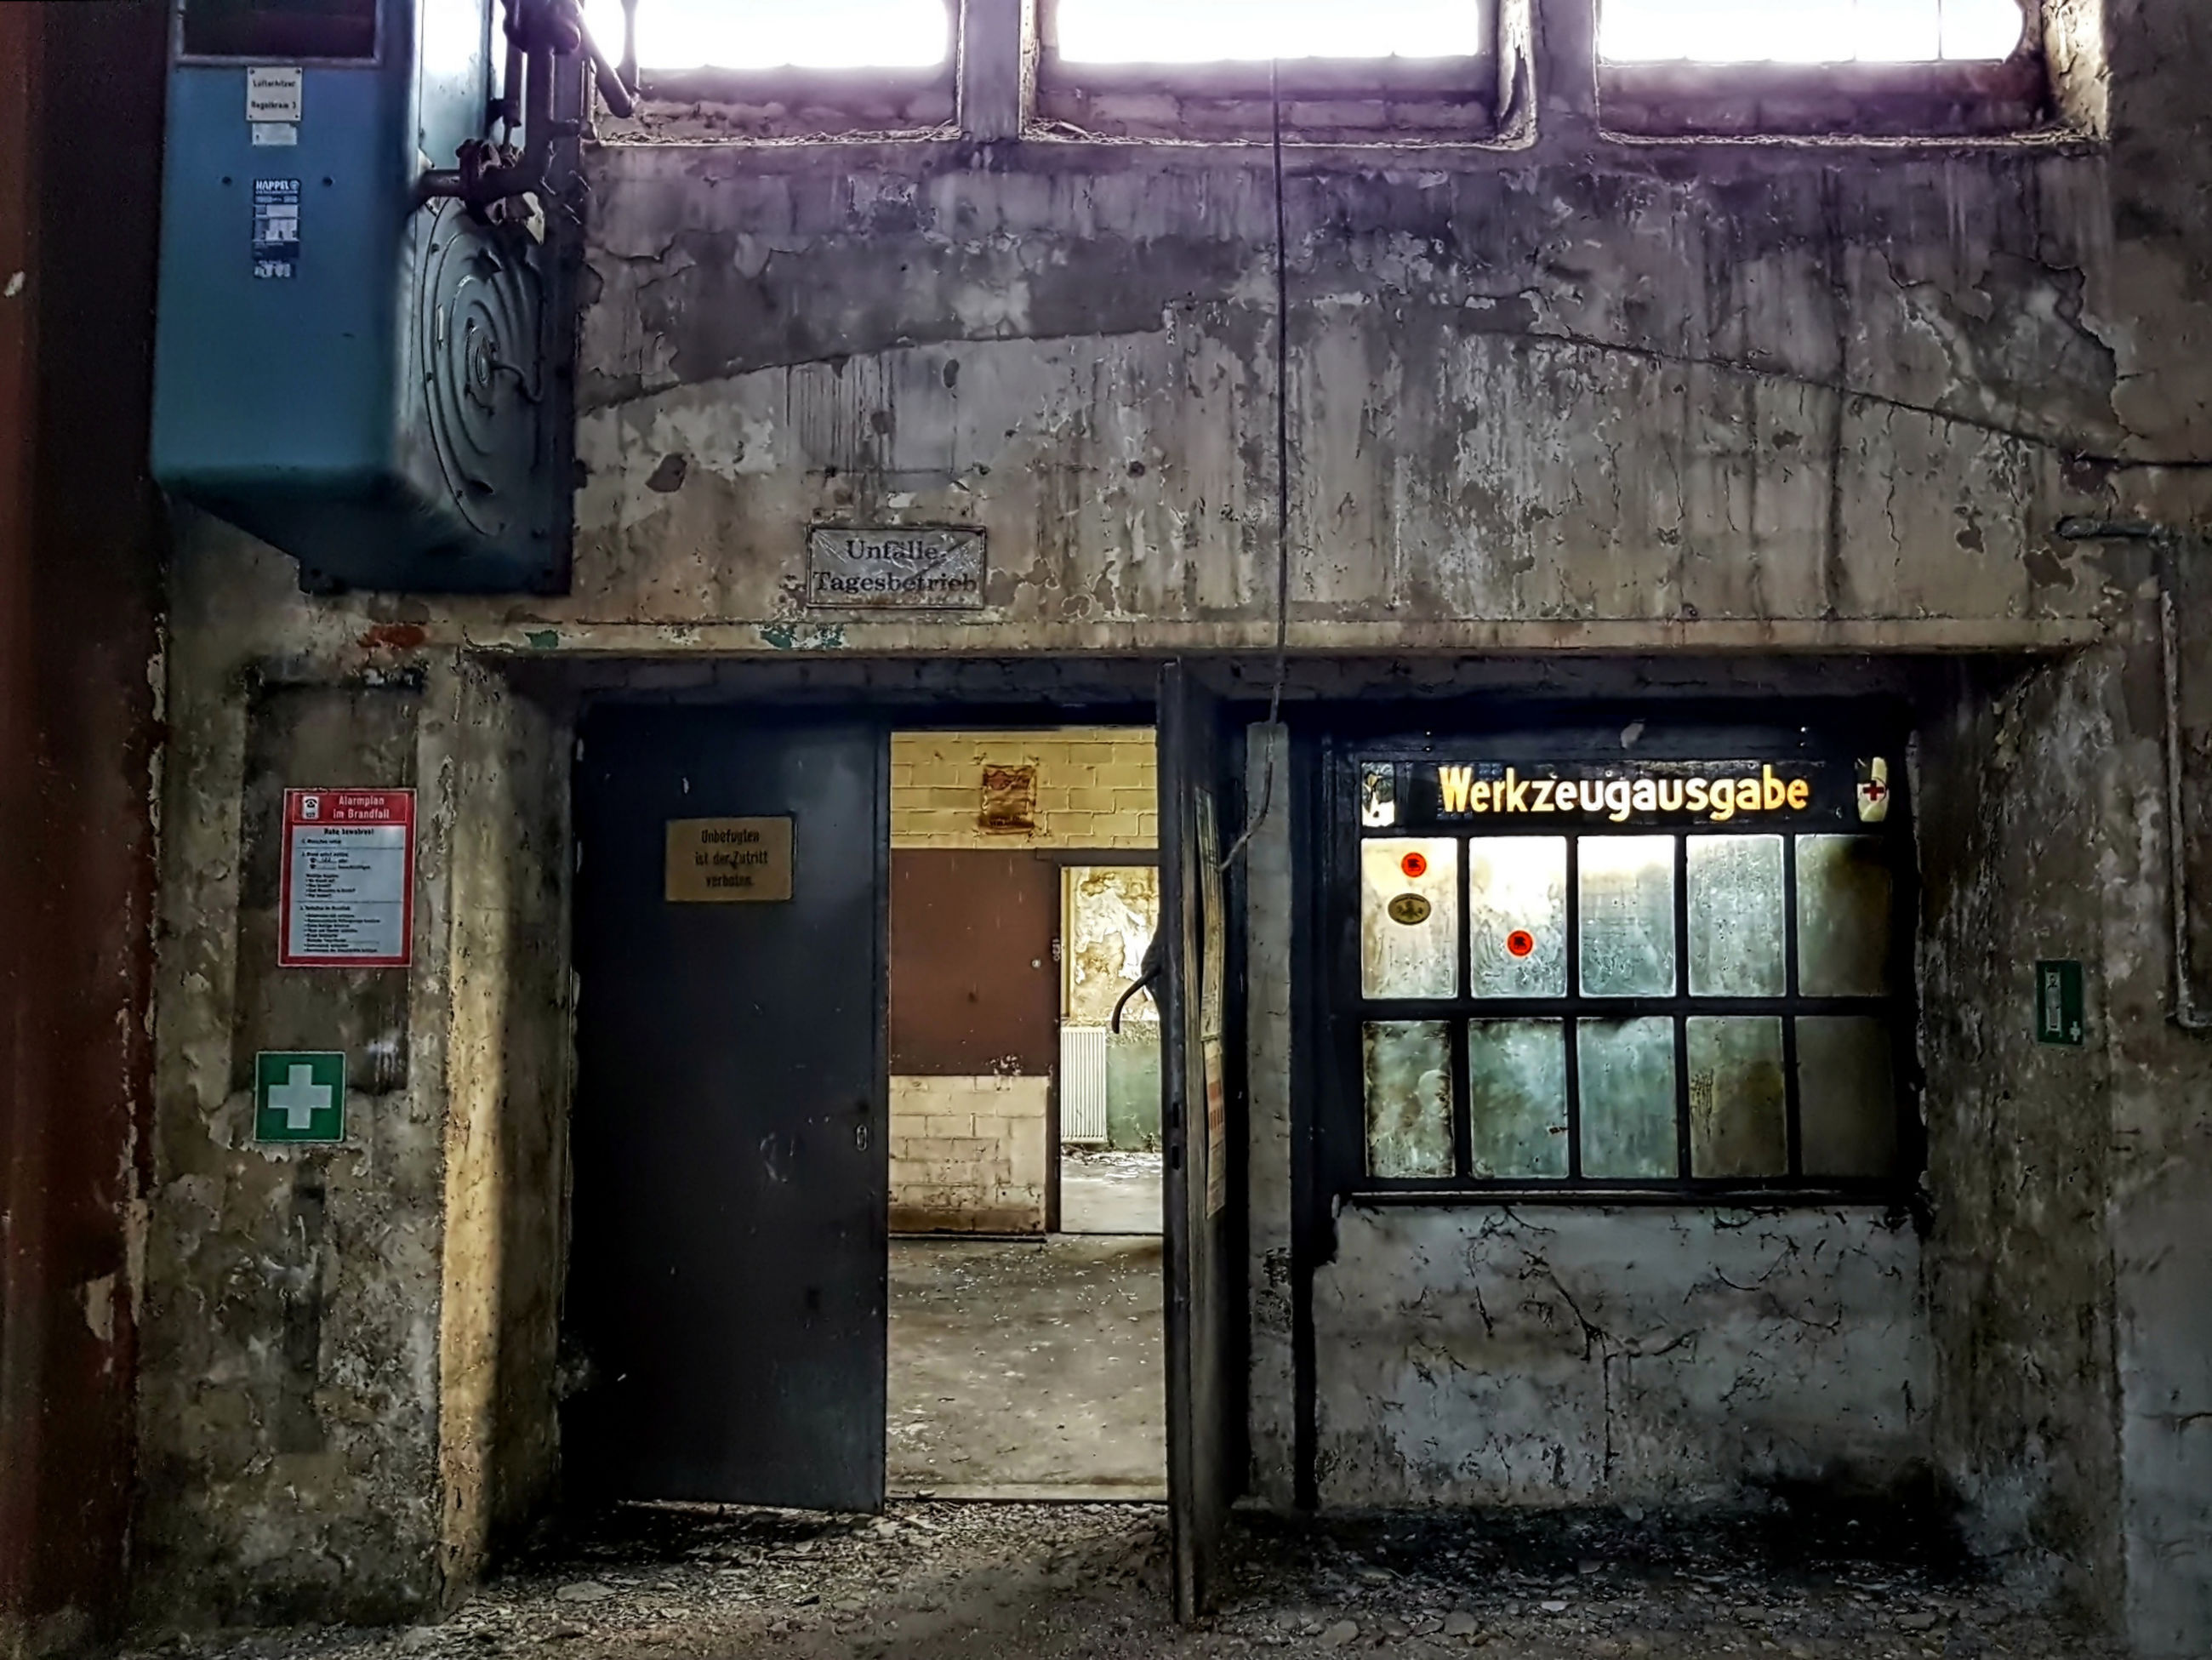 abandoned, architecture, entrance, door, old, built structure, weathered, building, no people, damaged, obsolete, deterioration, decline, day, run-down, building exterior, bad condition, outdoors, window, ruined